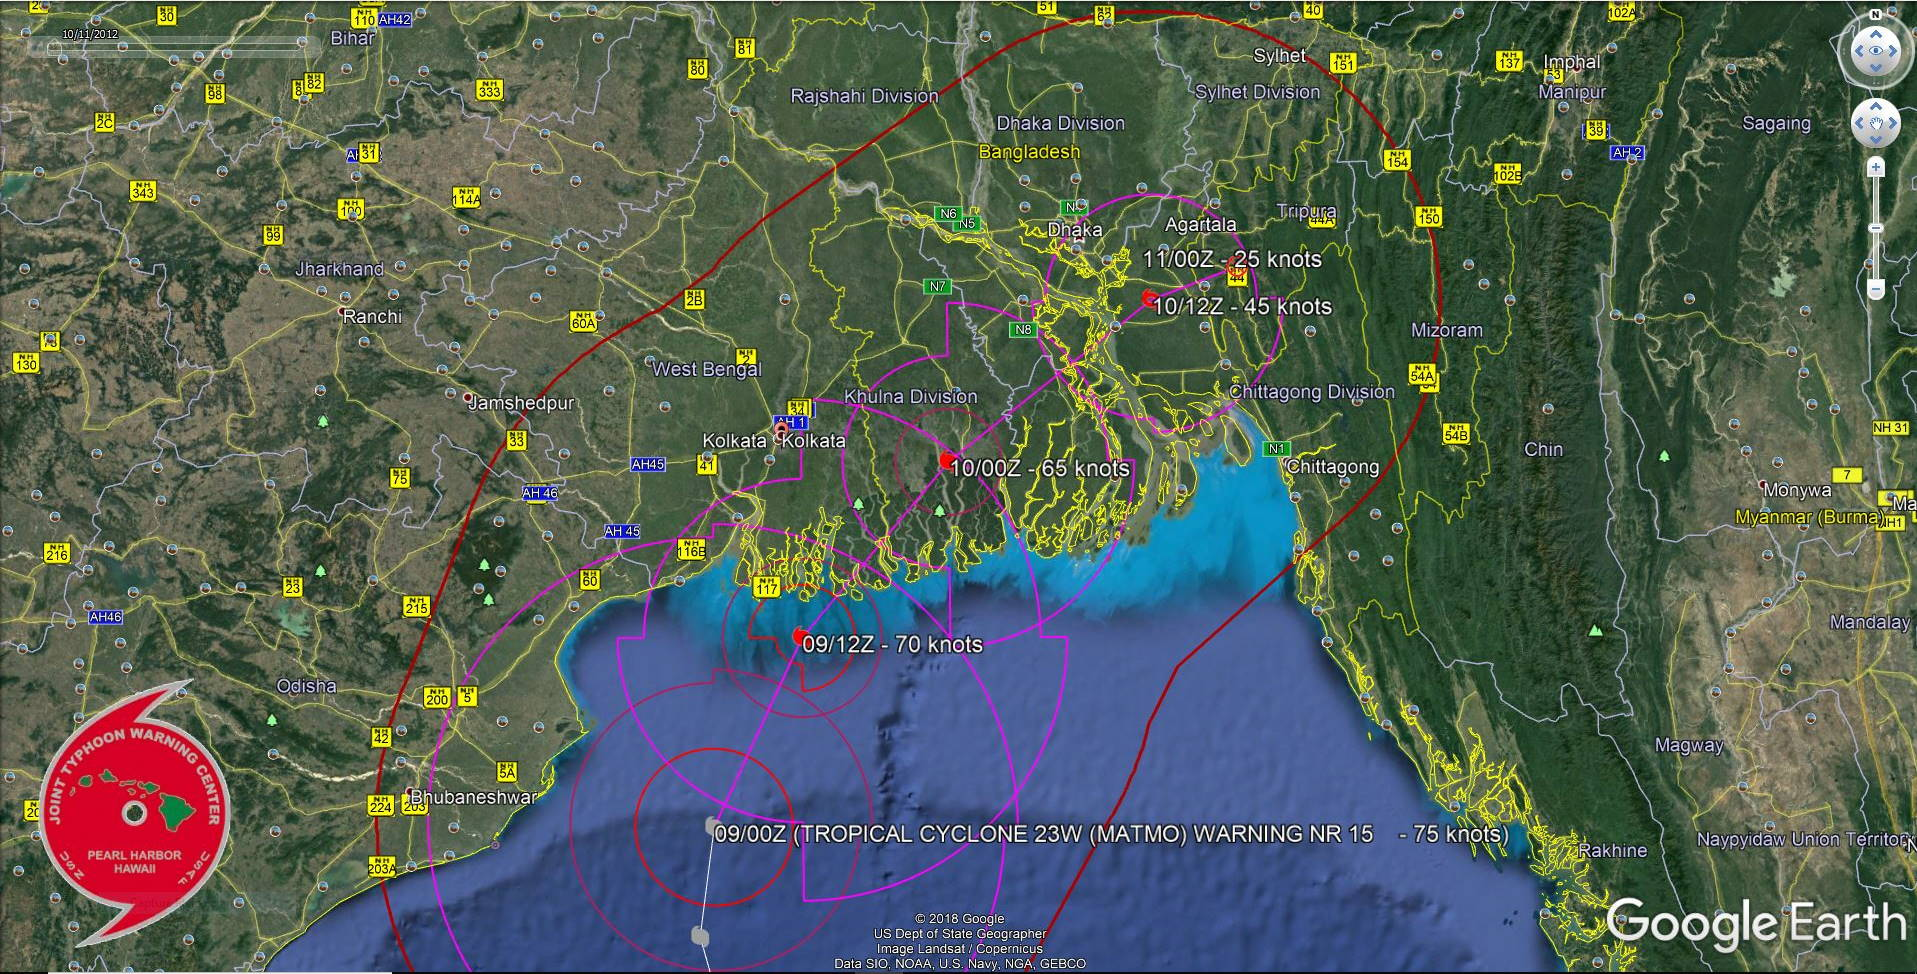 FORECAST TO TRACK APPRX 100KM TO THE EAST OF KOLKATA SHORTLY BEFORE 24H